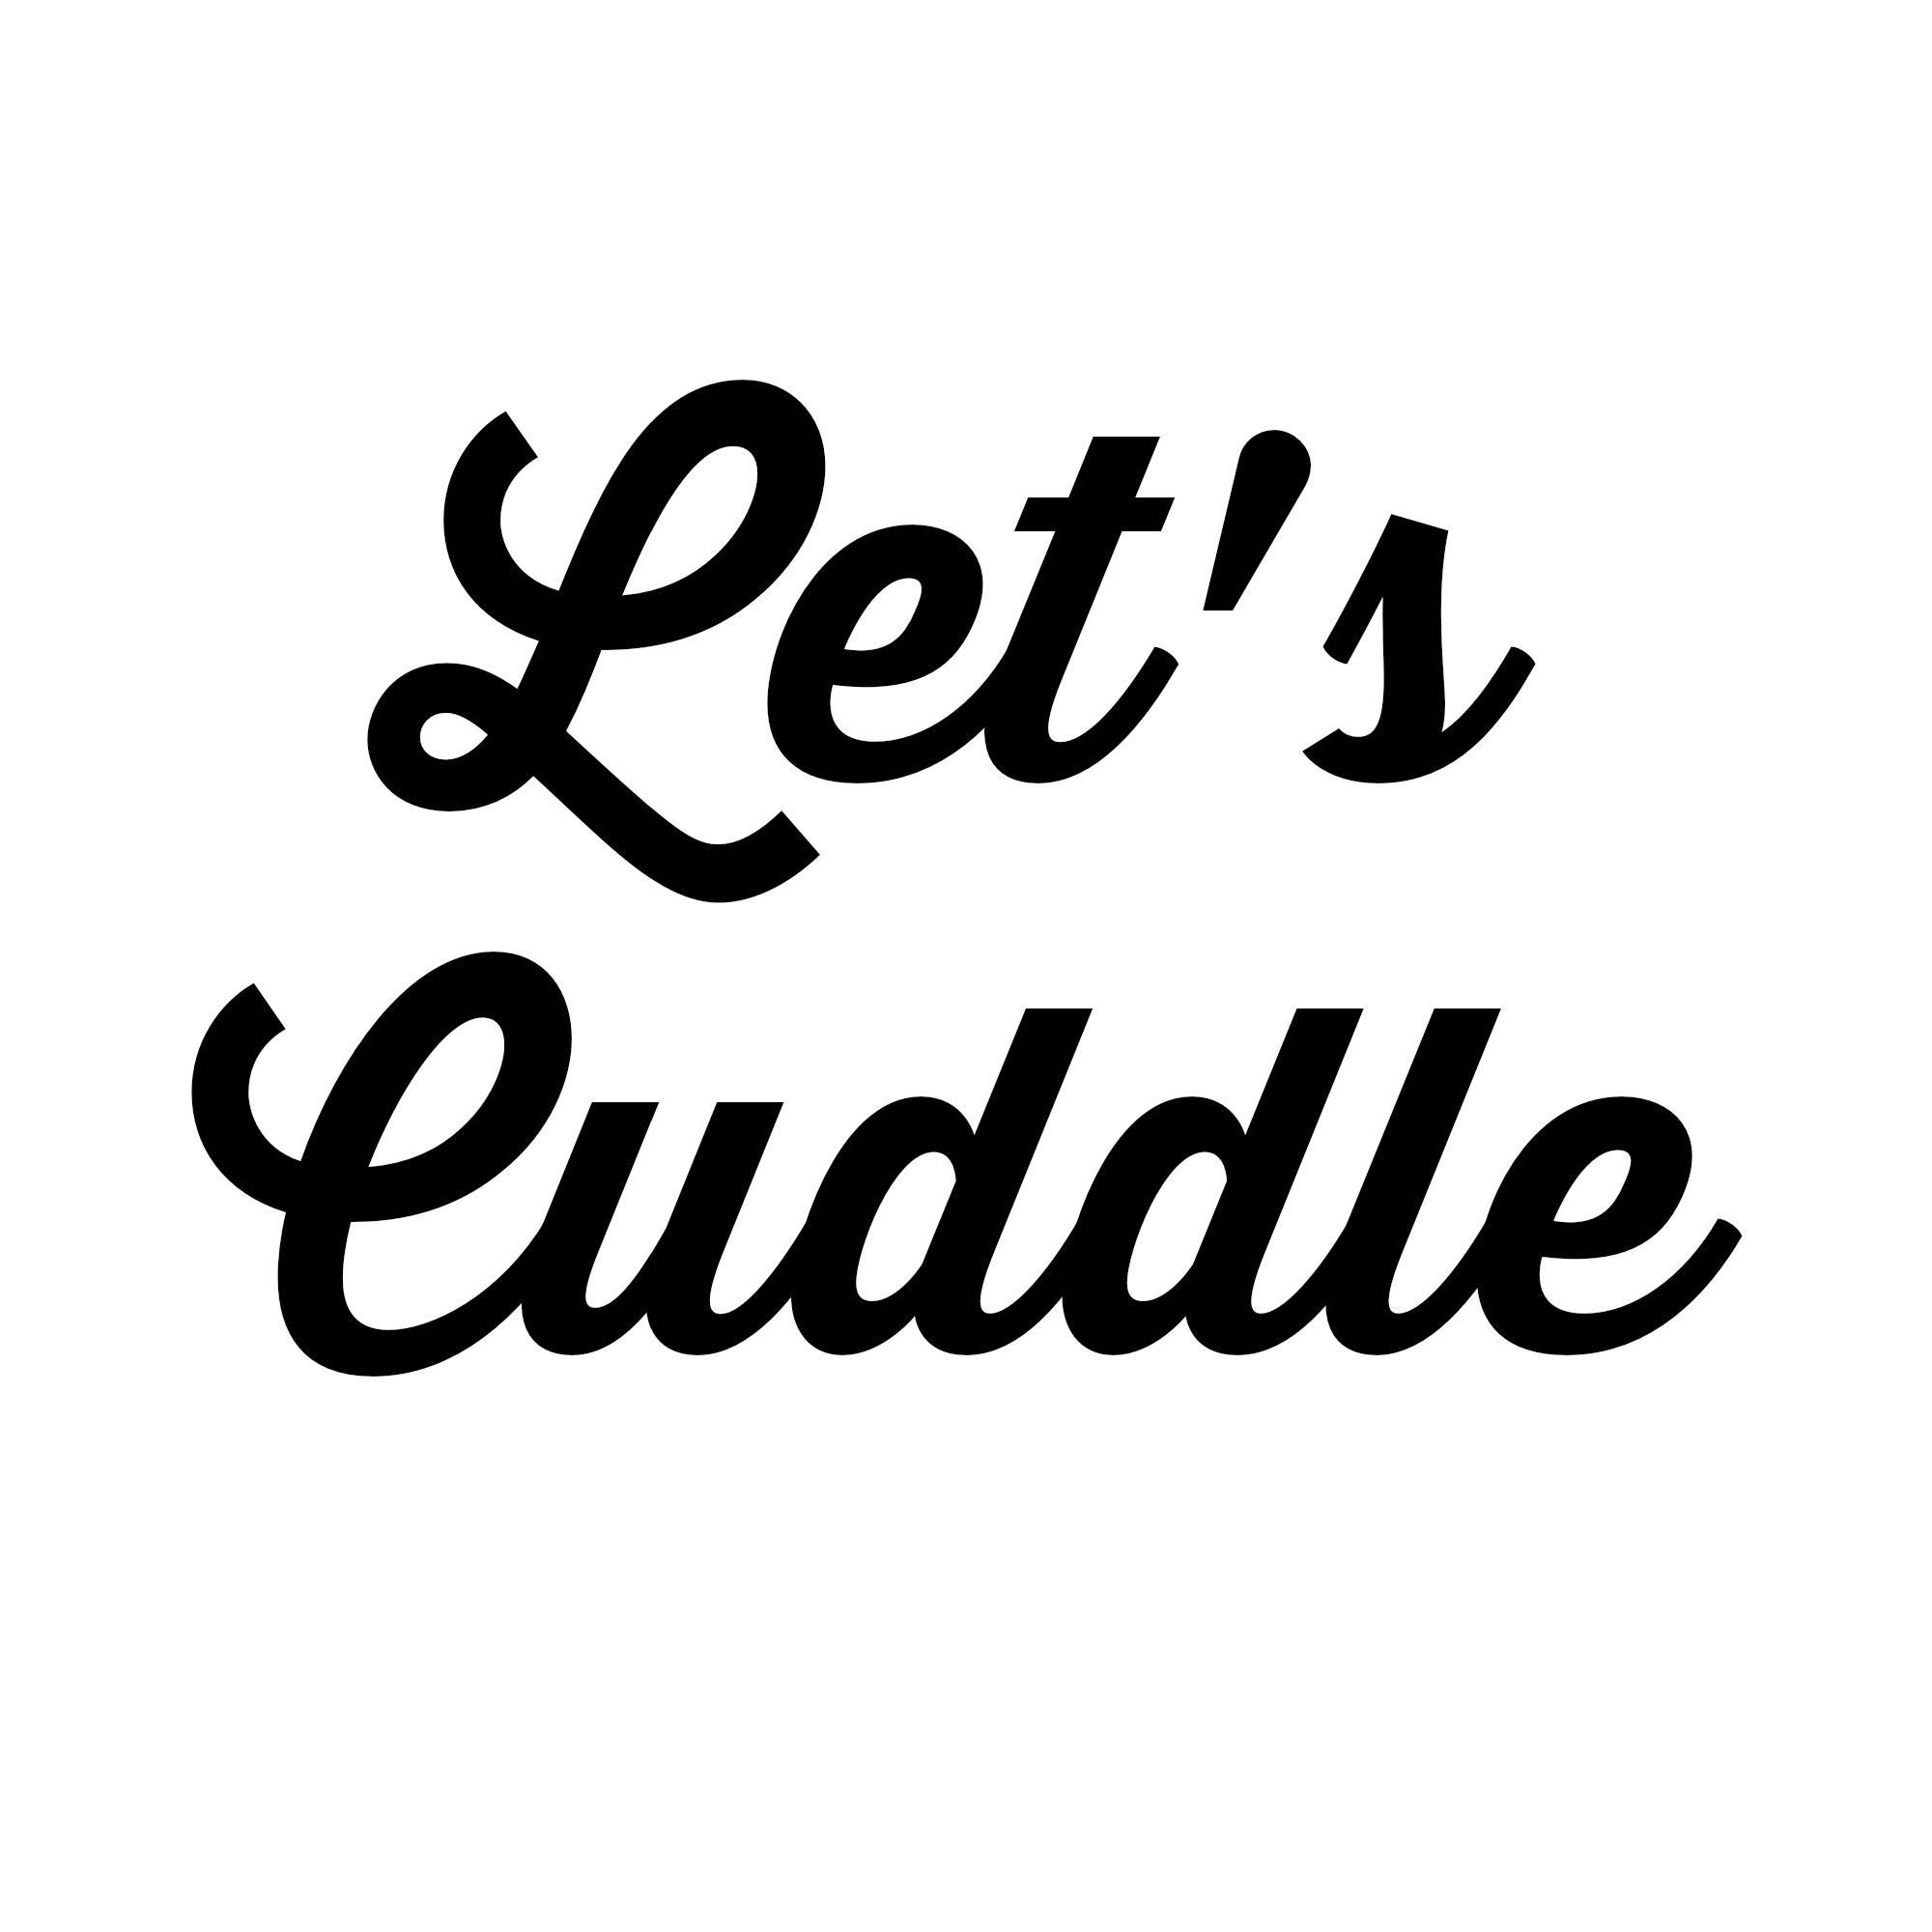 Cuddling Quotes And Sayings